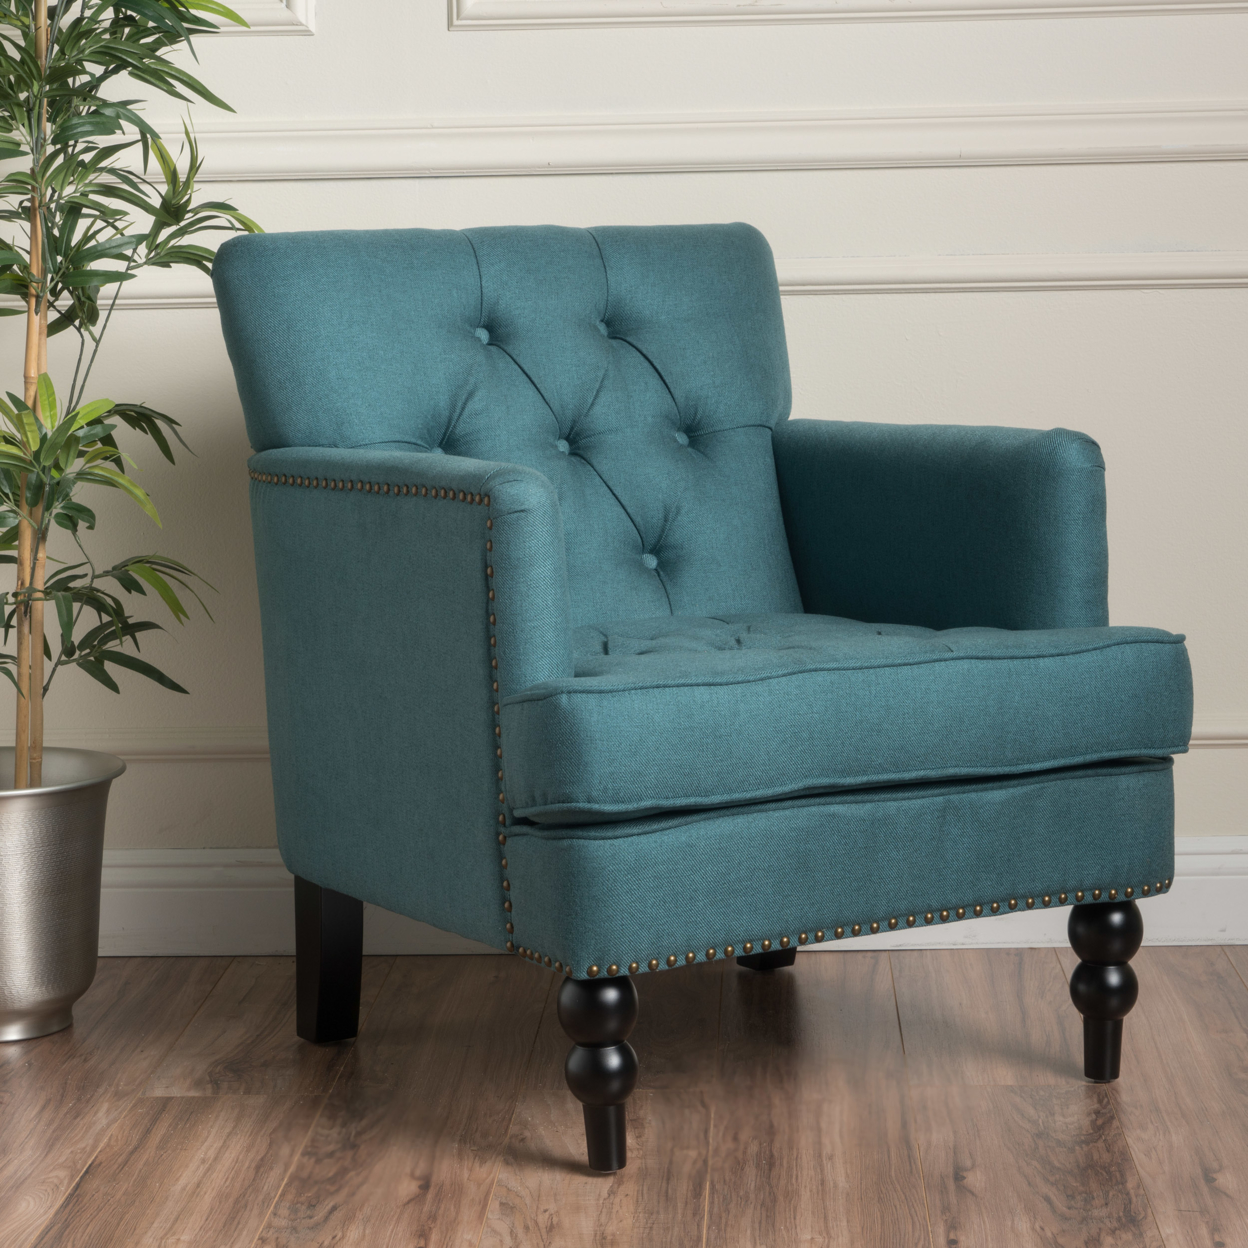 Us 260 74 Madene Tufted Back Fabric Club Chair In Living Room Chairs From Furniture On Aliexpress Com Alibaba Group